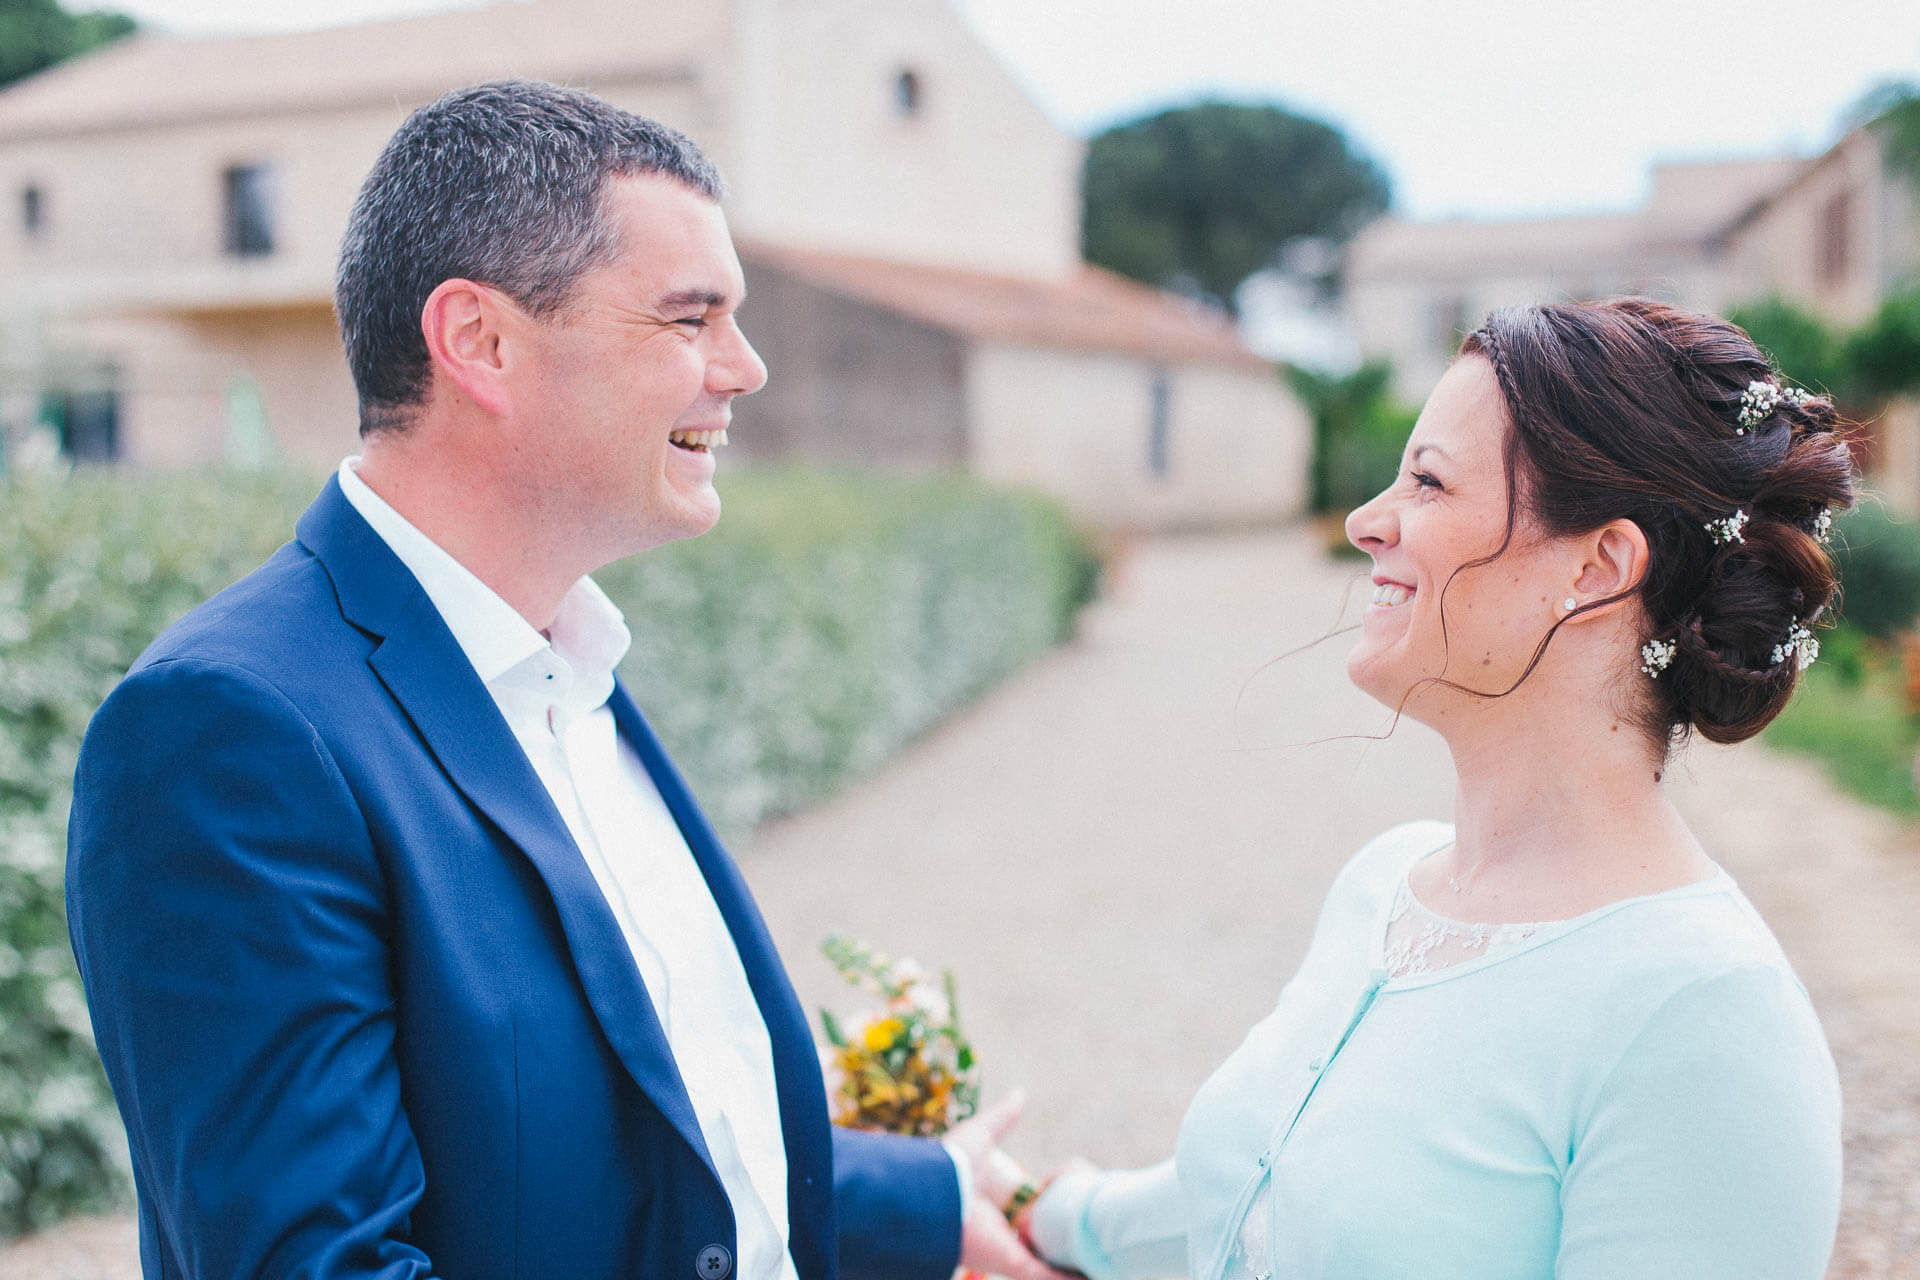 Photographe mariage montpellier champetre-10